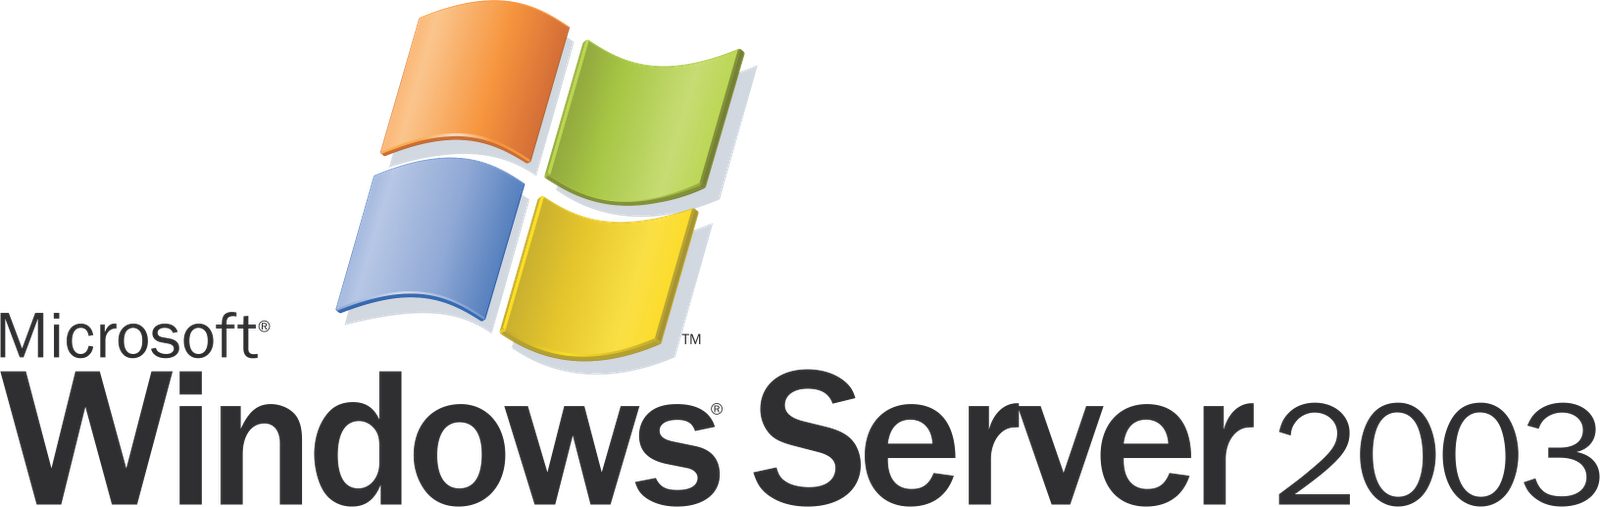 Windows server 2003 png